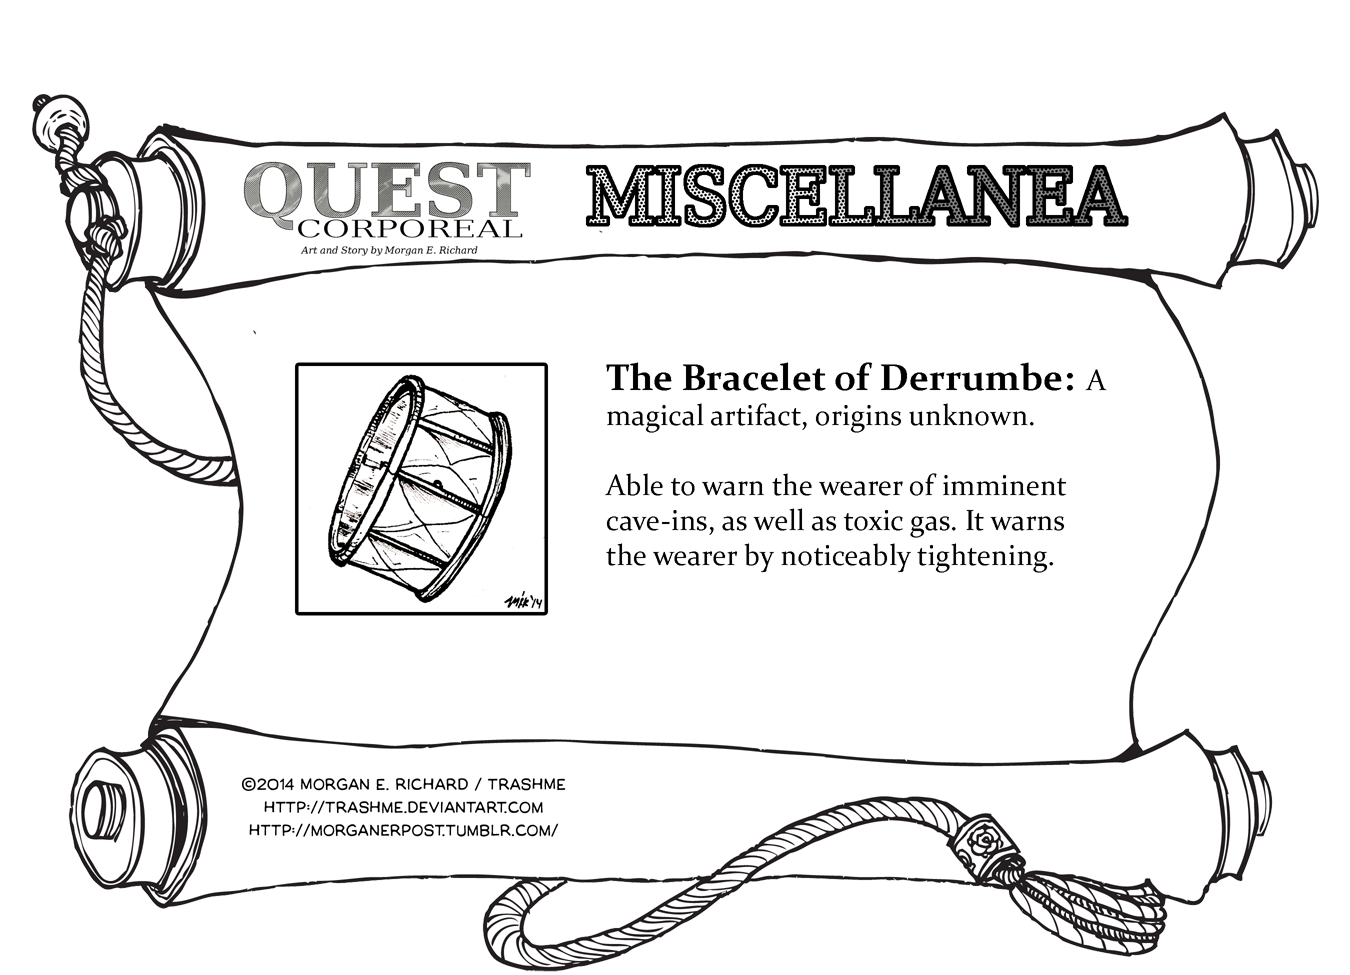 Miscellanea Corporeal: The Bracelet of Derrumbe